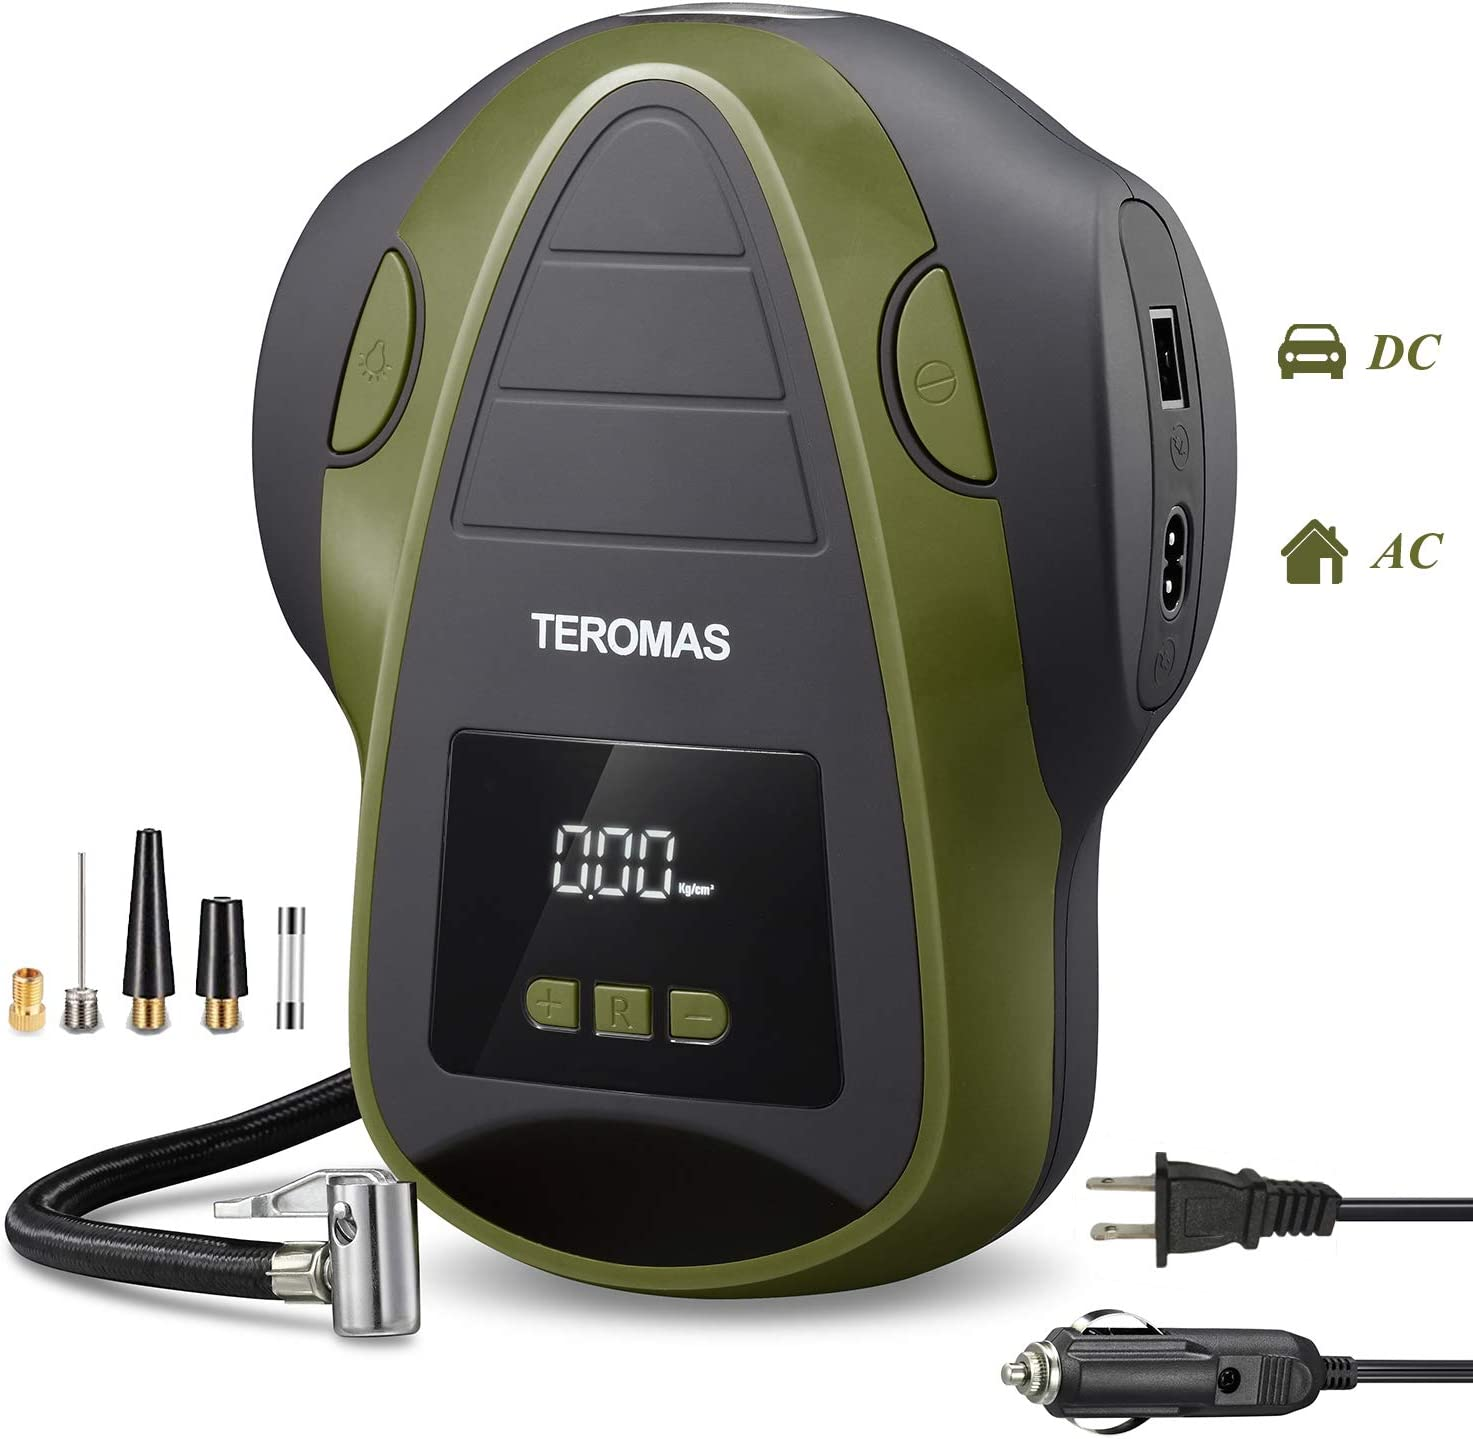 TEROMAS Tire Inflator Air Compressor, Portable Air Pump for Car Tires 12V DC and Other Inflatables at Home 110V AC, Digital Electric Tire Pump with Pressure Gauge(Green)